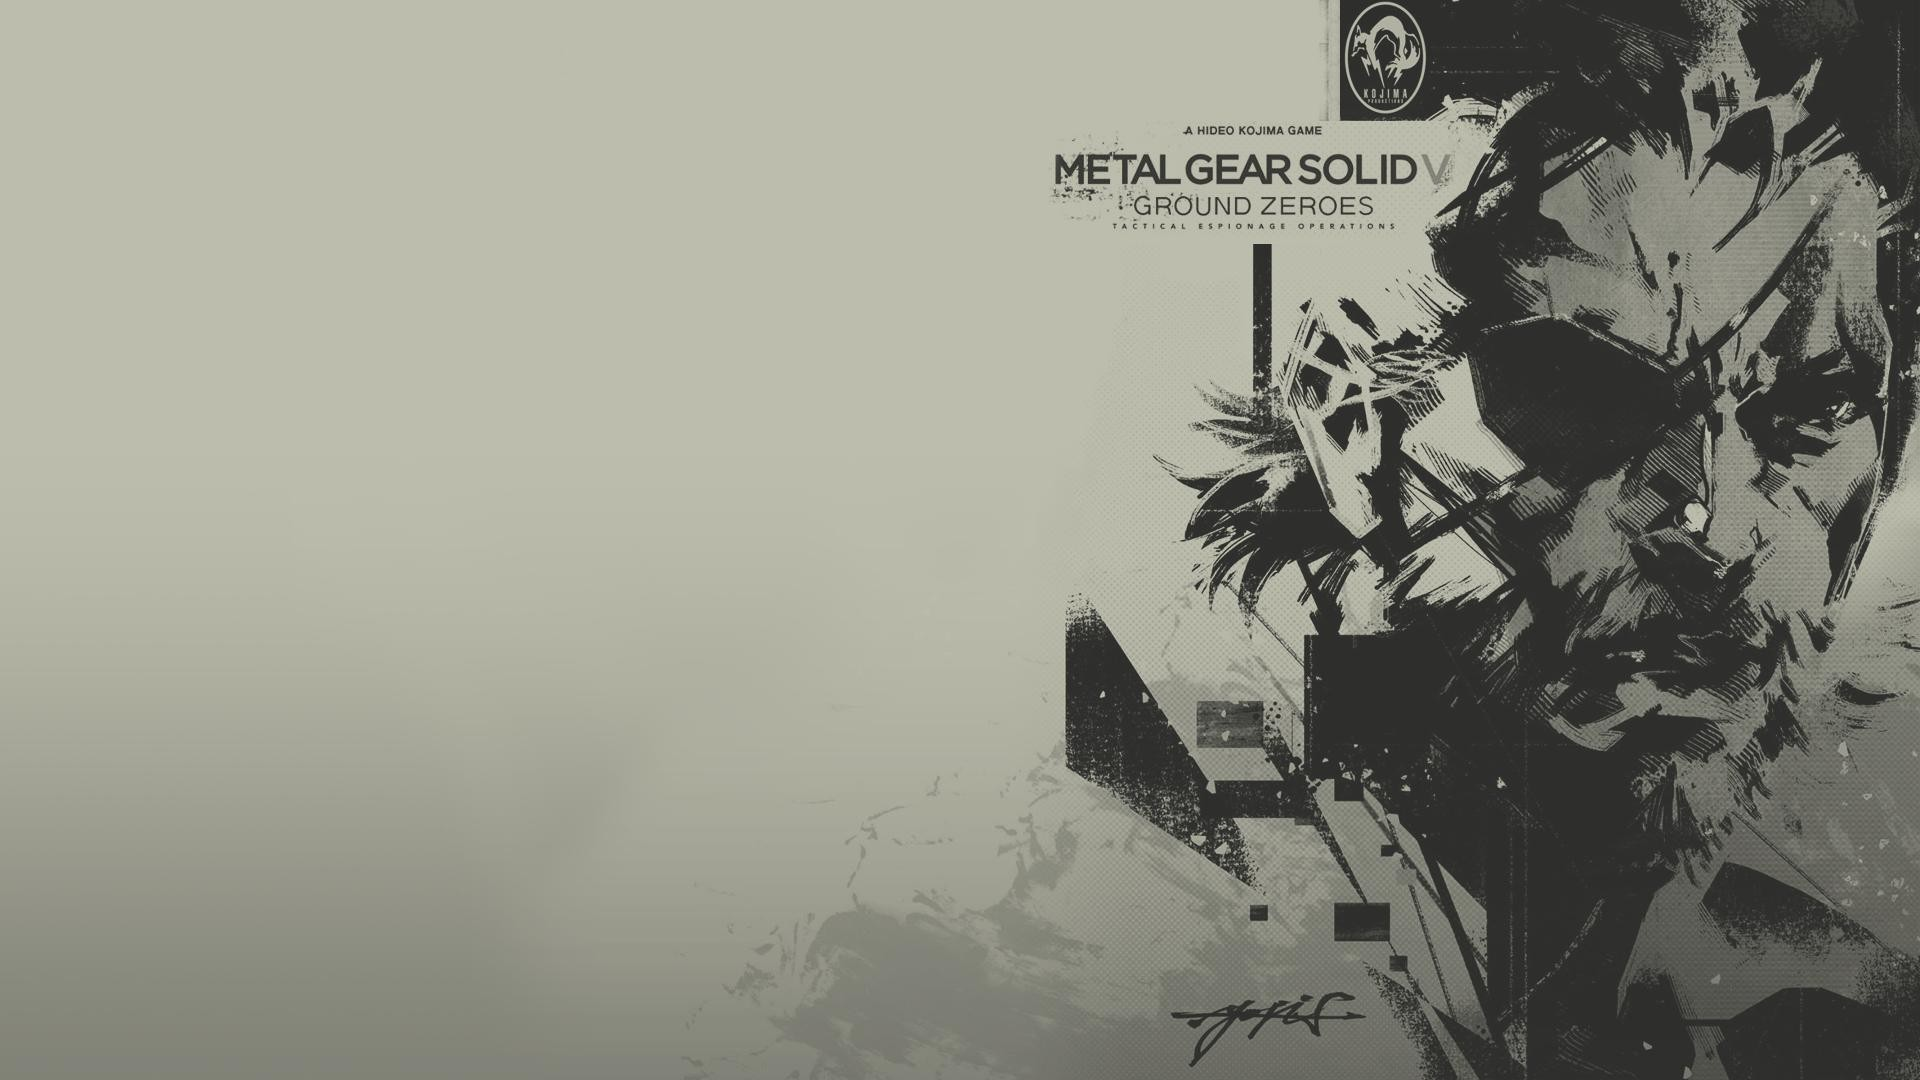 Metal Gear Solid Wallpaper HD ·①